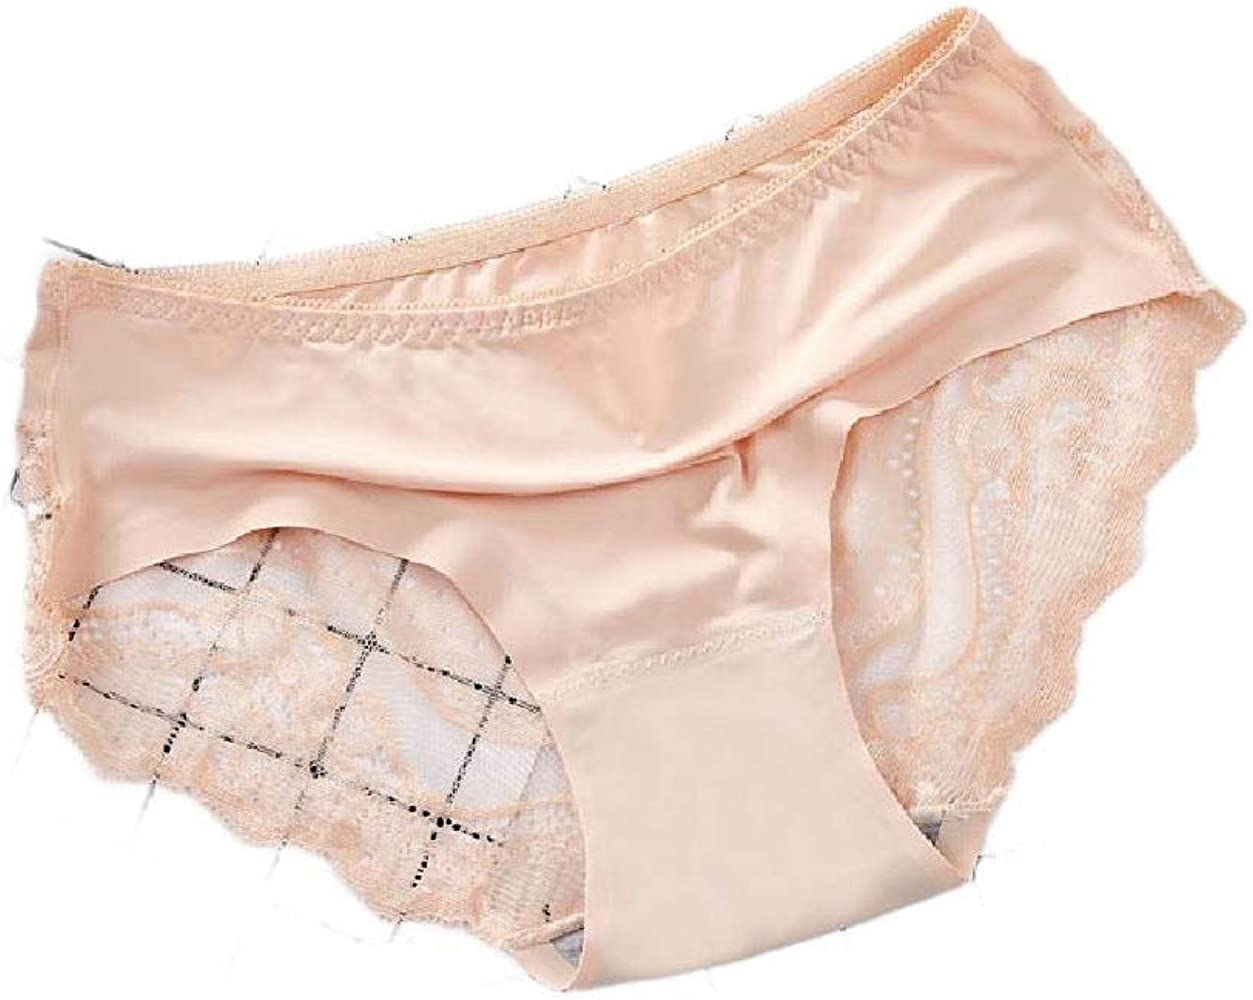 CuteRose Womens Breathable Lace Everyday 5 Pack Middle Waist Lingerie Underwear AS1 S: Amazon.es: Ropa y accesorios